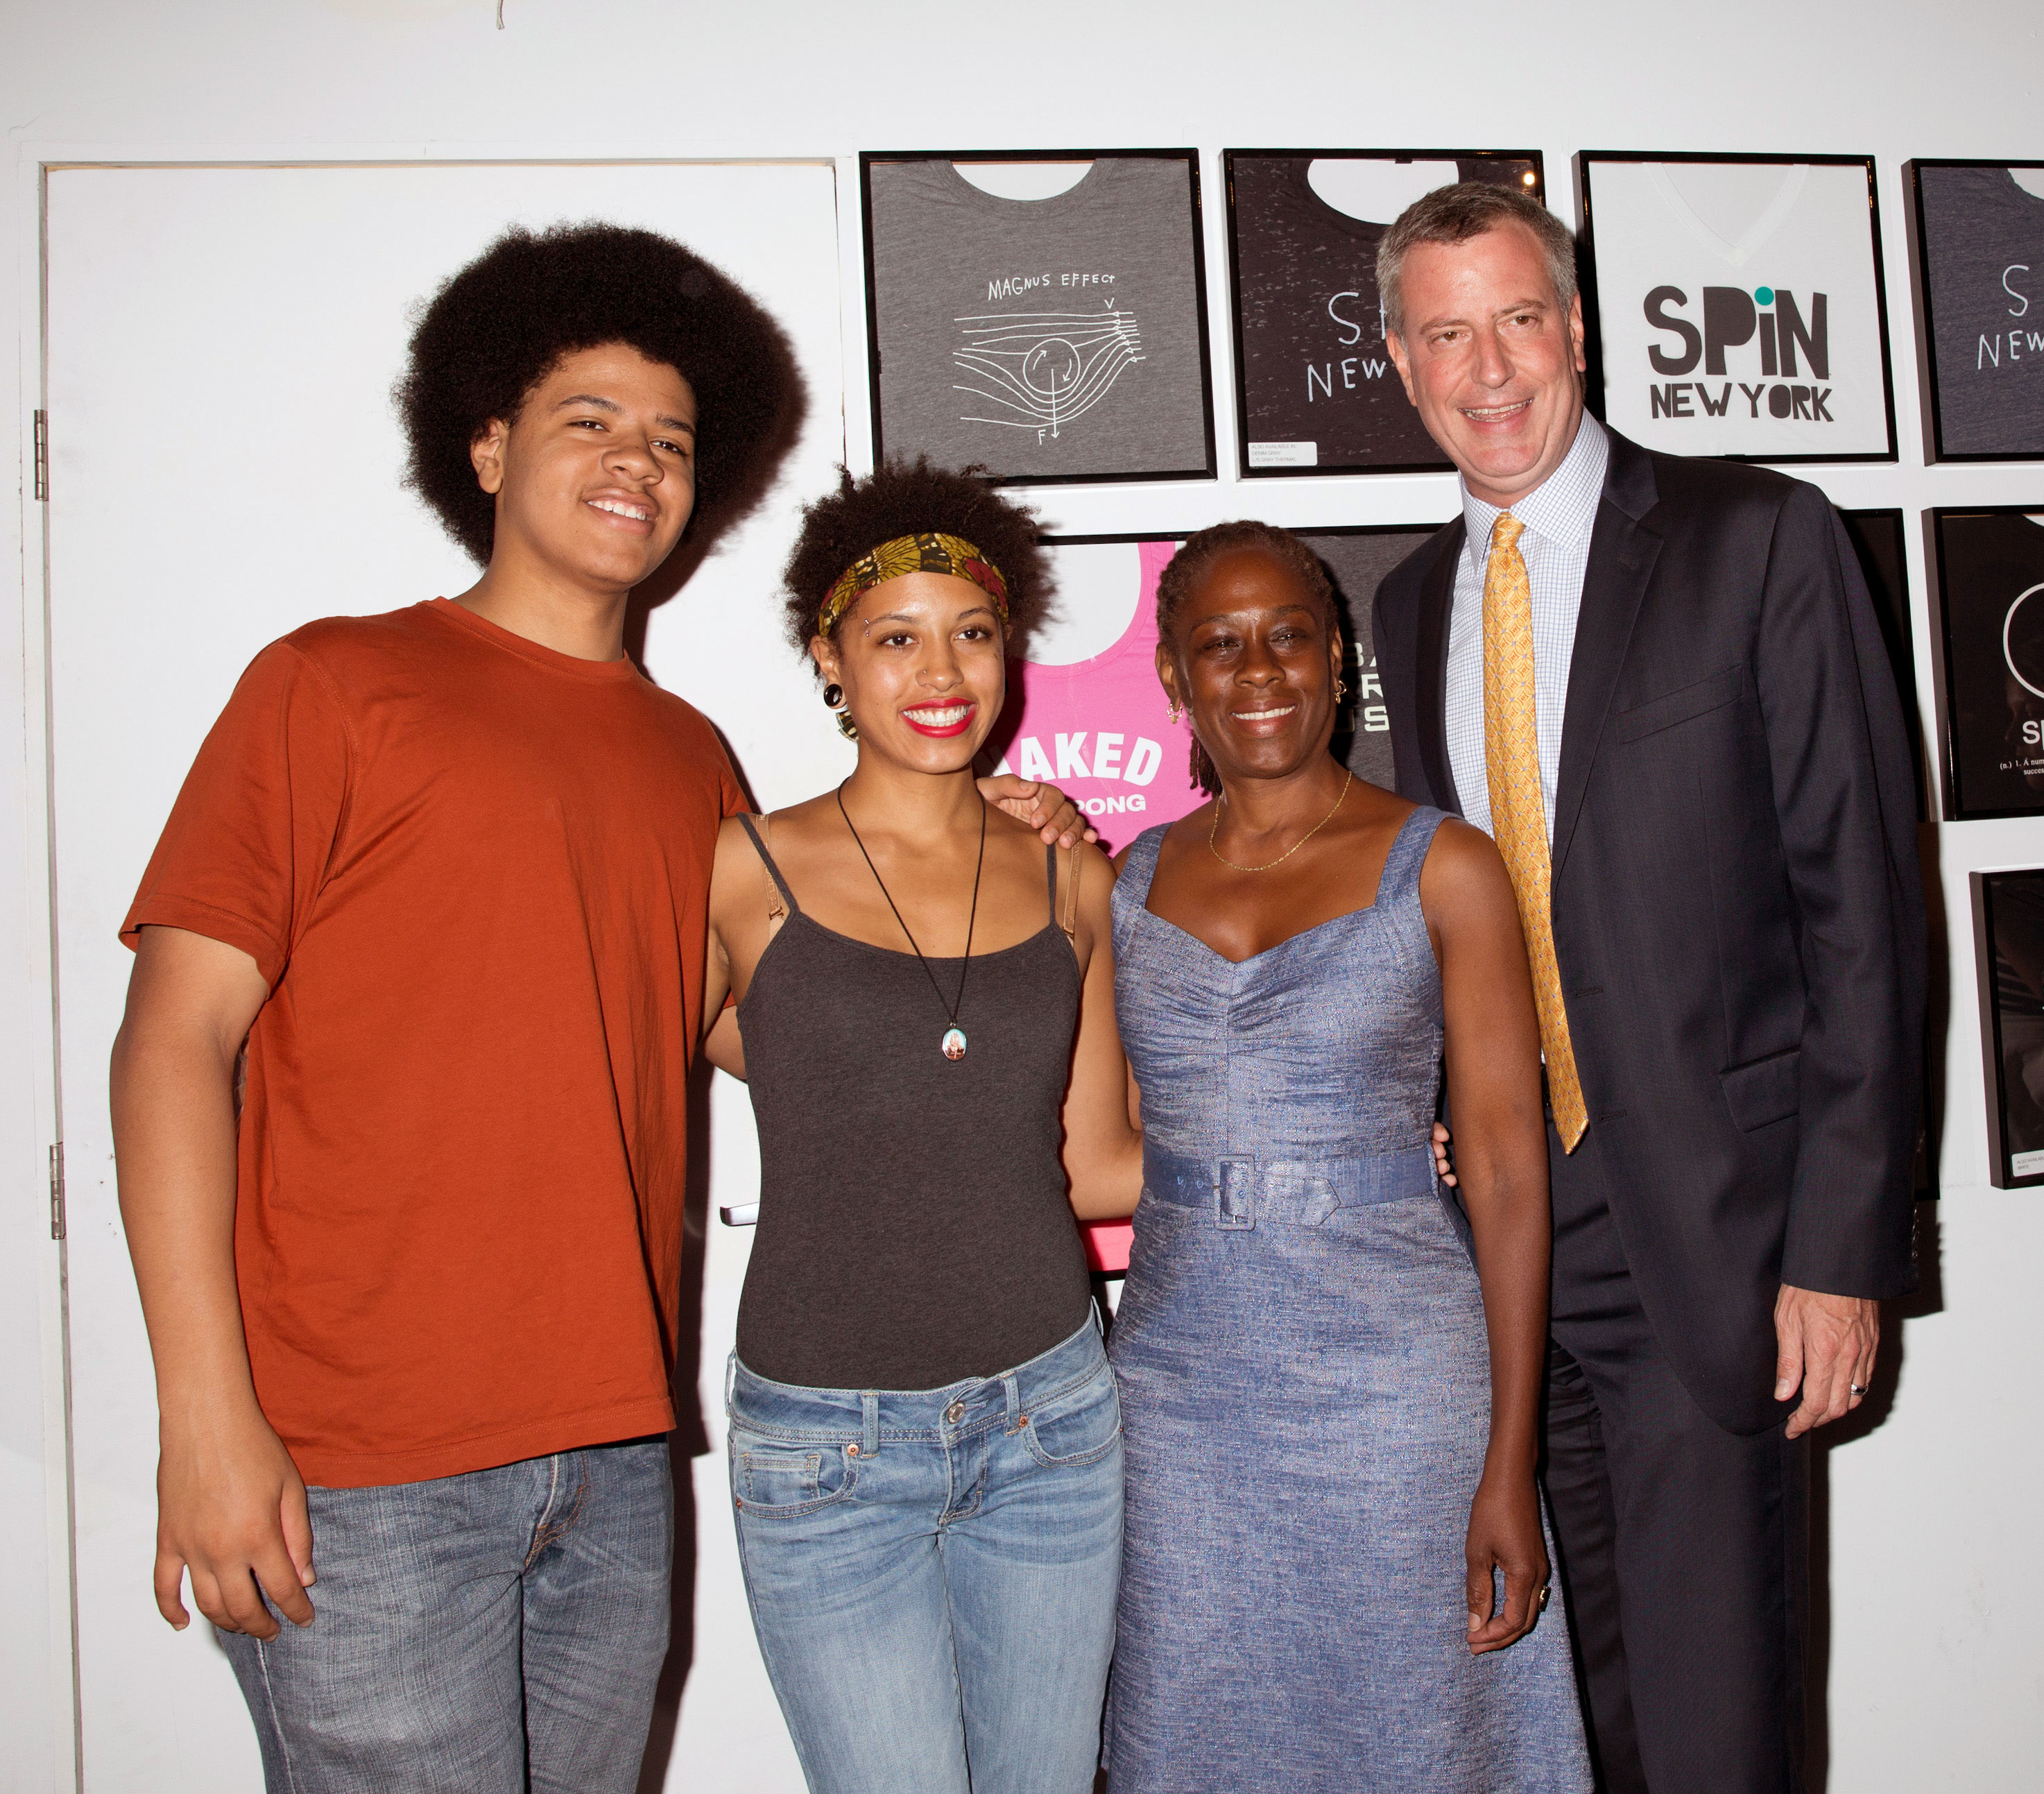 Susan Sarandon hosts ping pong event to support Bill de Blasio for mayor at Club Spin, NYC